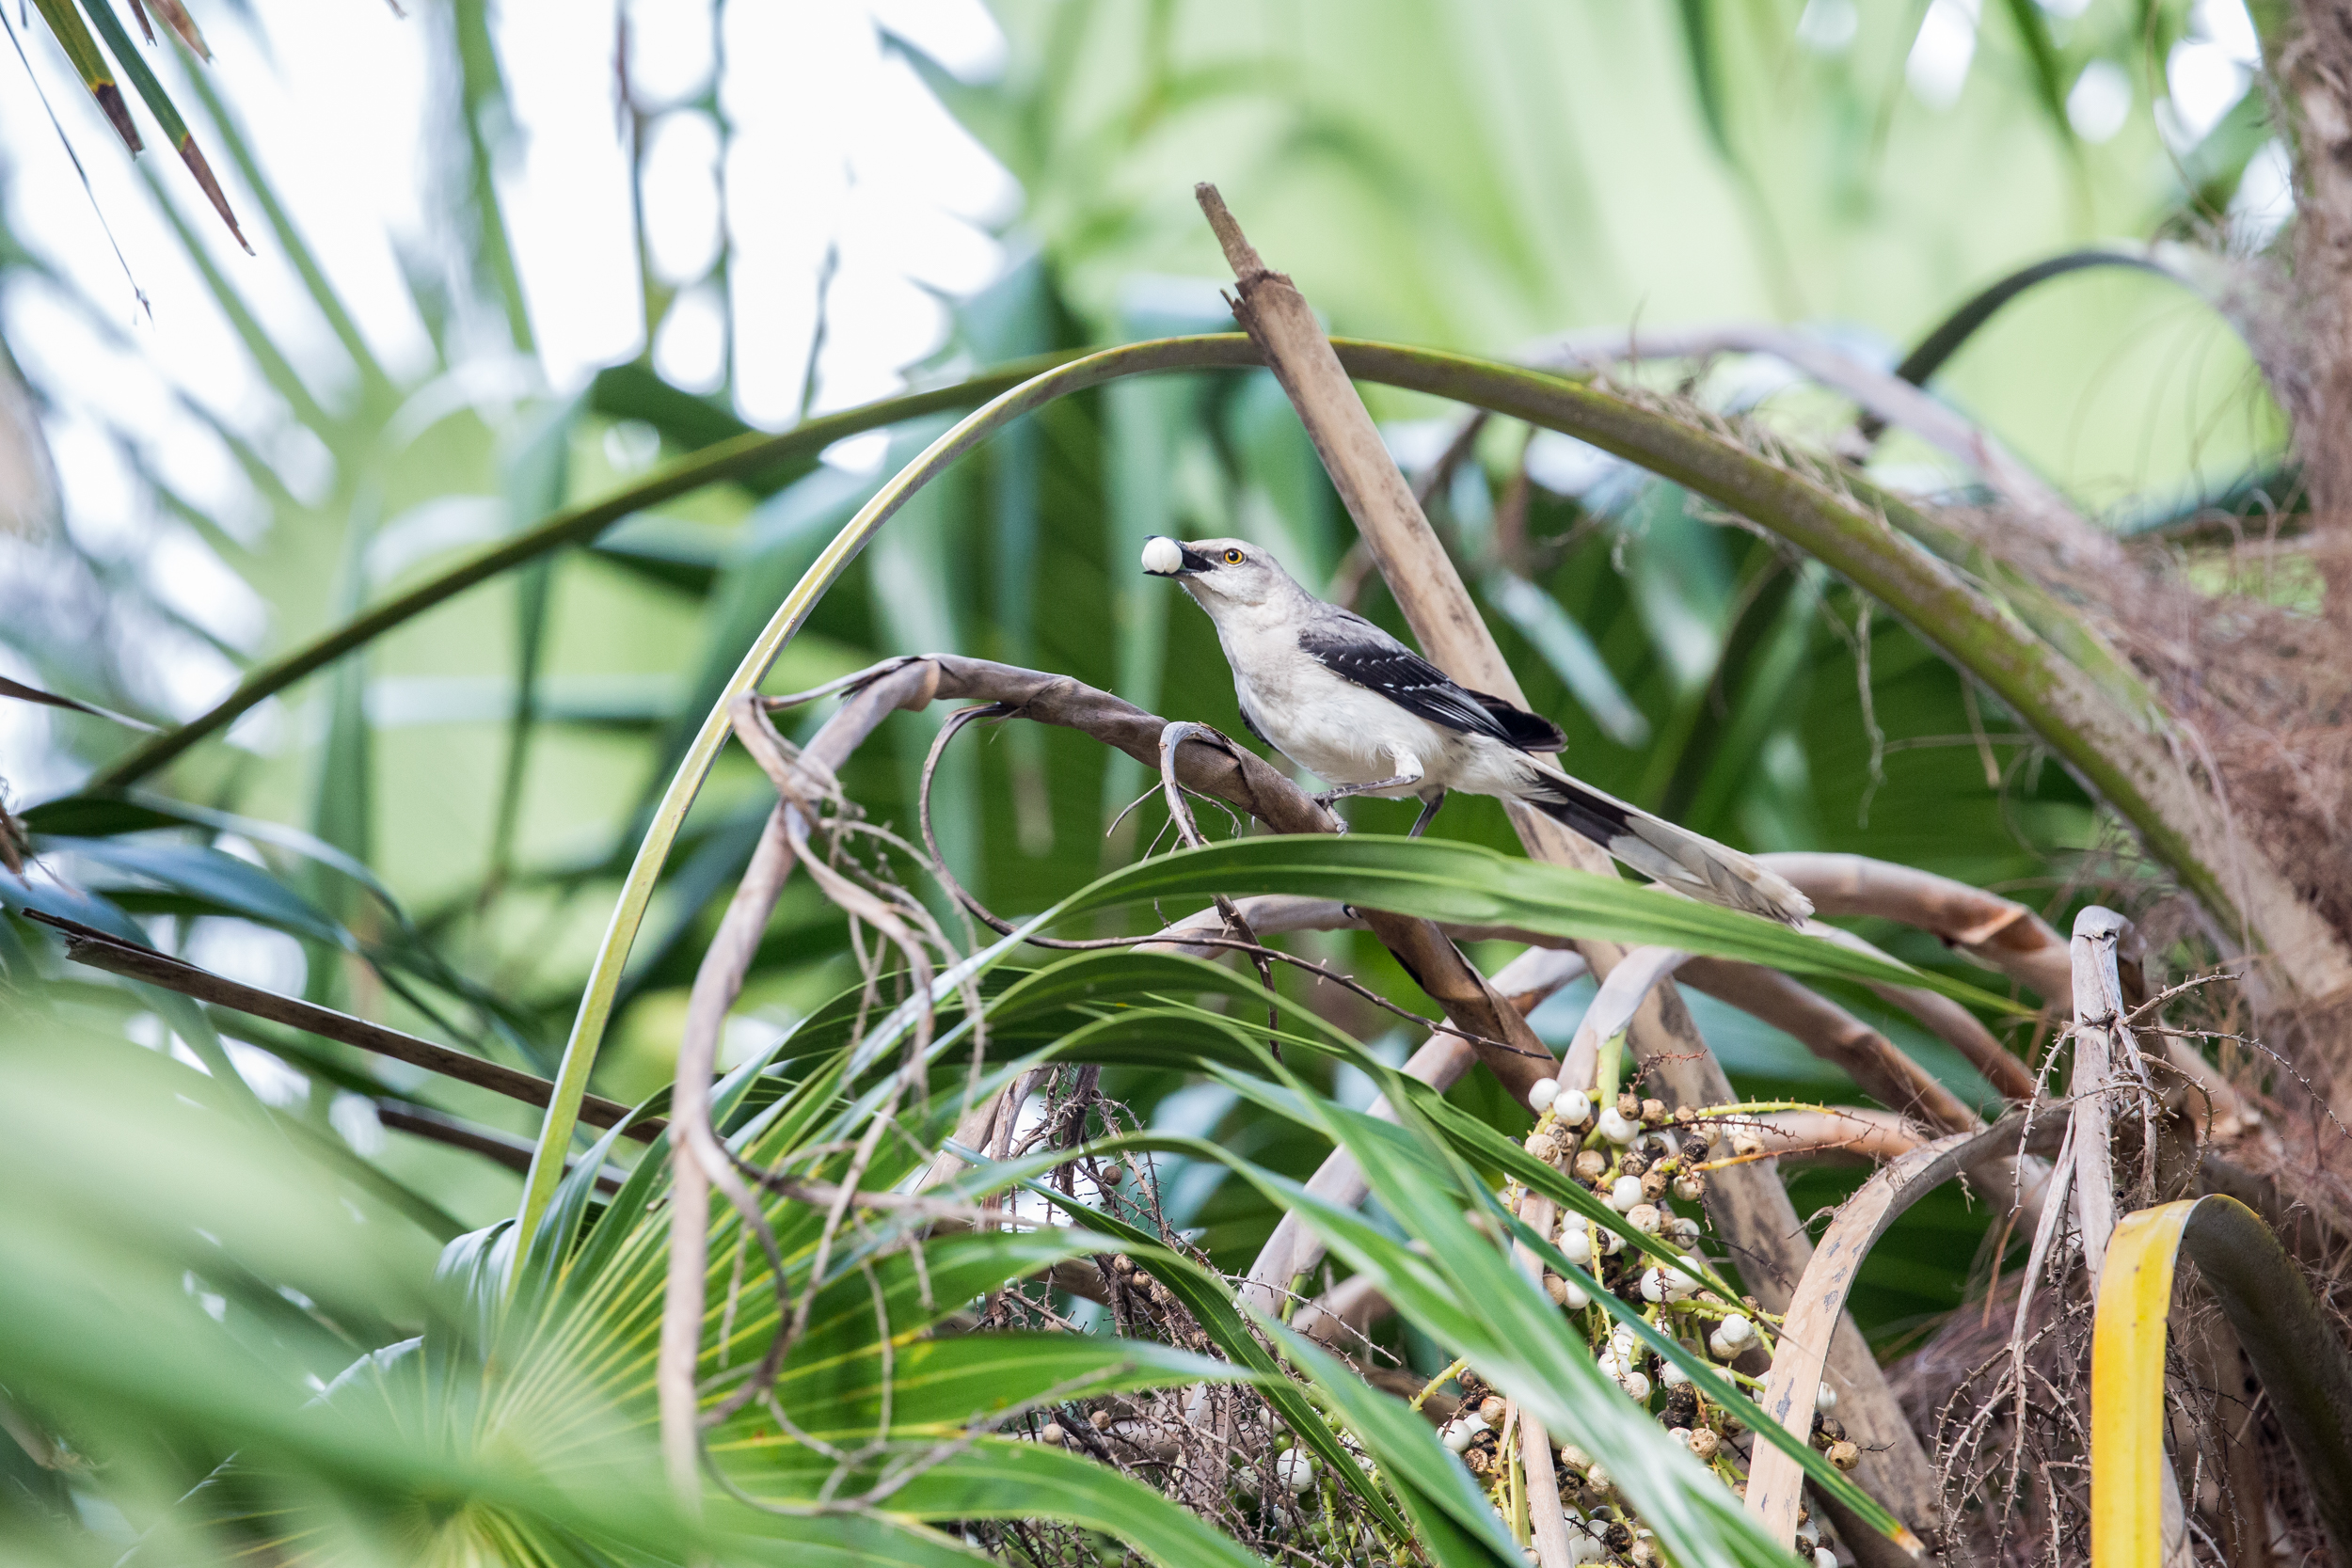 tropical mockingbird (Mimus gilvus) - A tropical mockingbird grabbing a berry in the Sian Ka'an Biosphere Reserve. These fearless birds will aggressively protect their nests against large predators such as black iguanas or dogs.